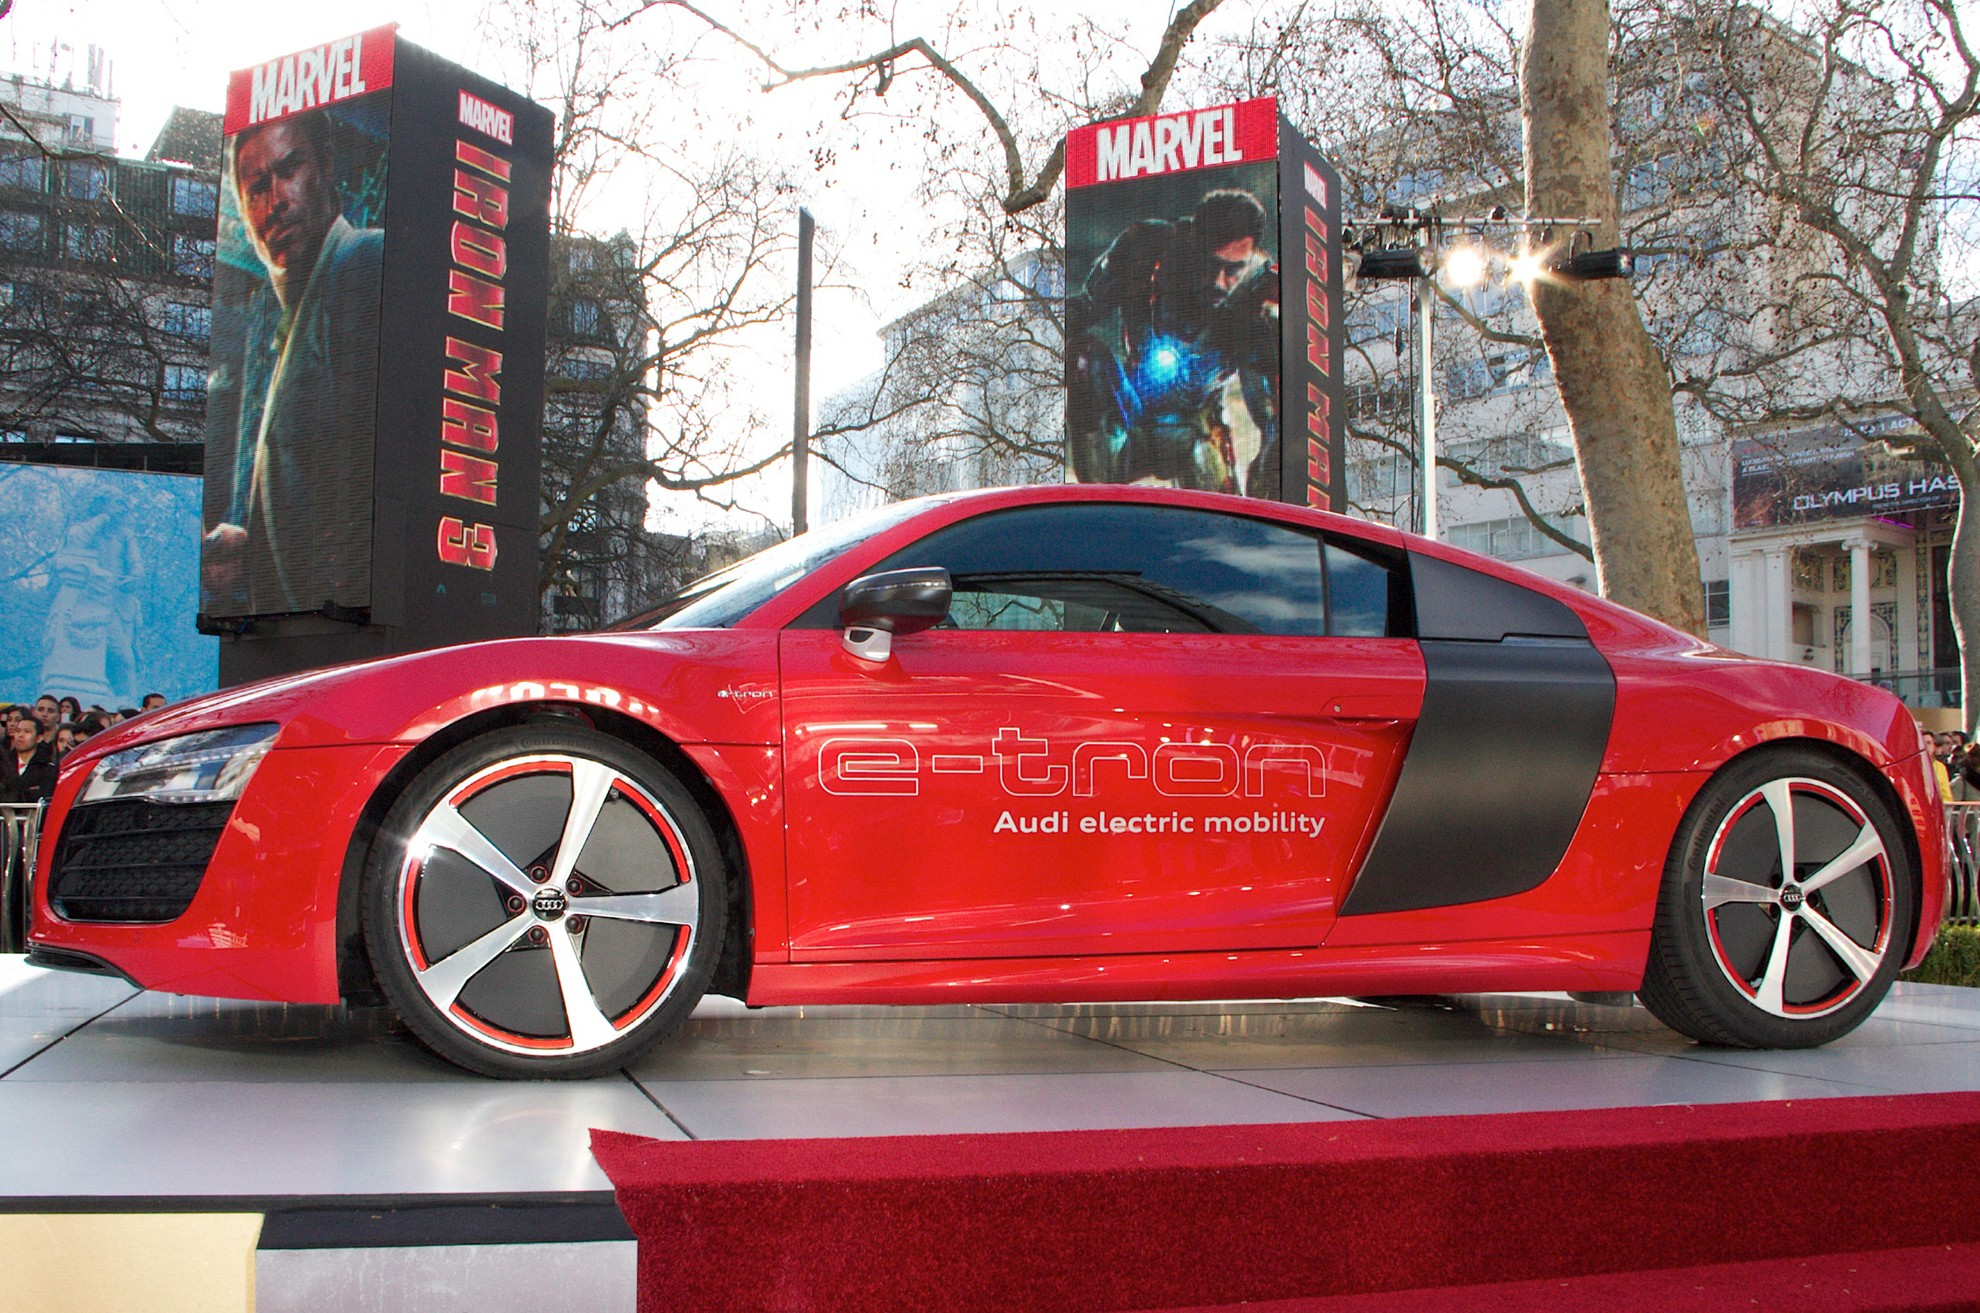 Iron Man 3 Car